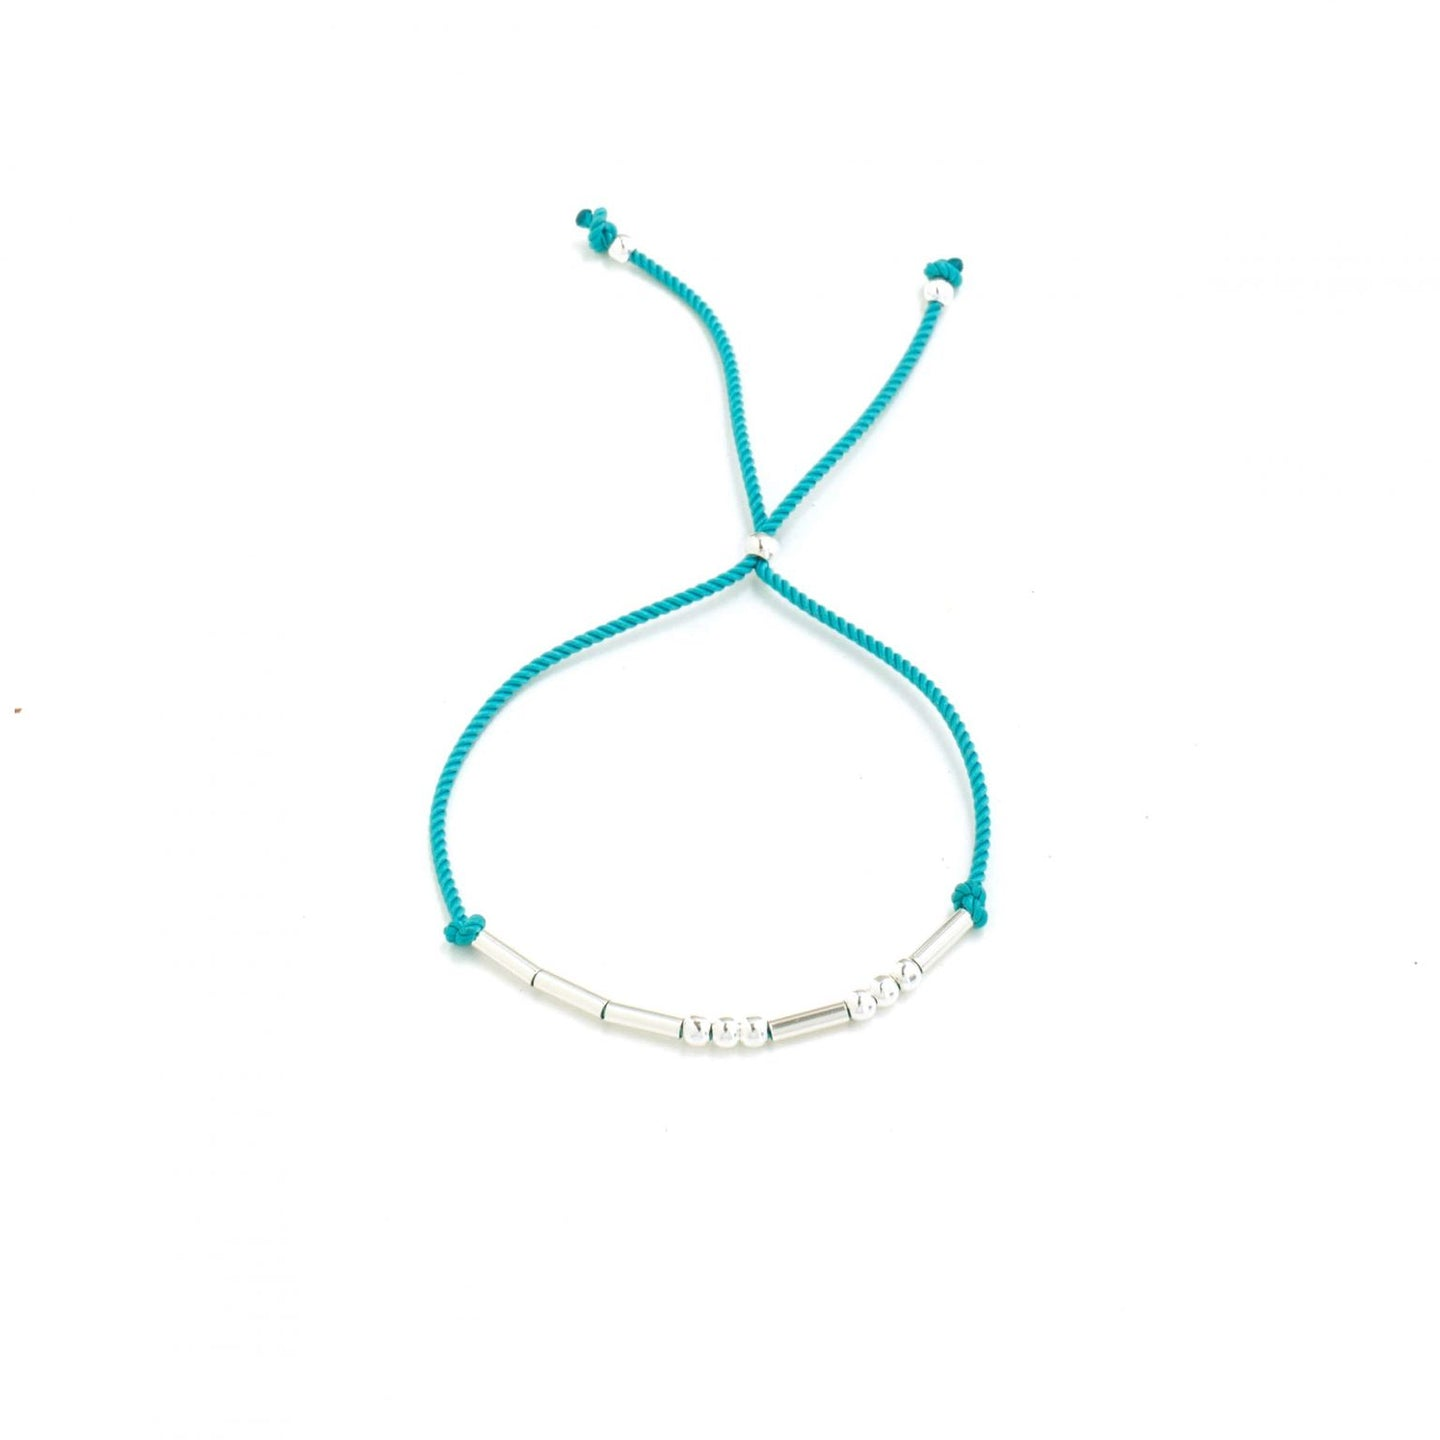 Juno Silver Beaded Cord Bracelet - Turquoise